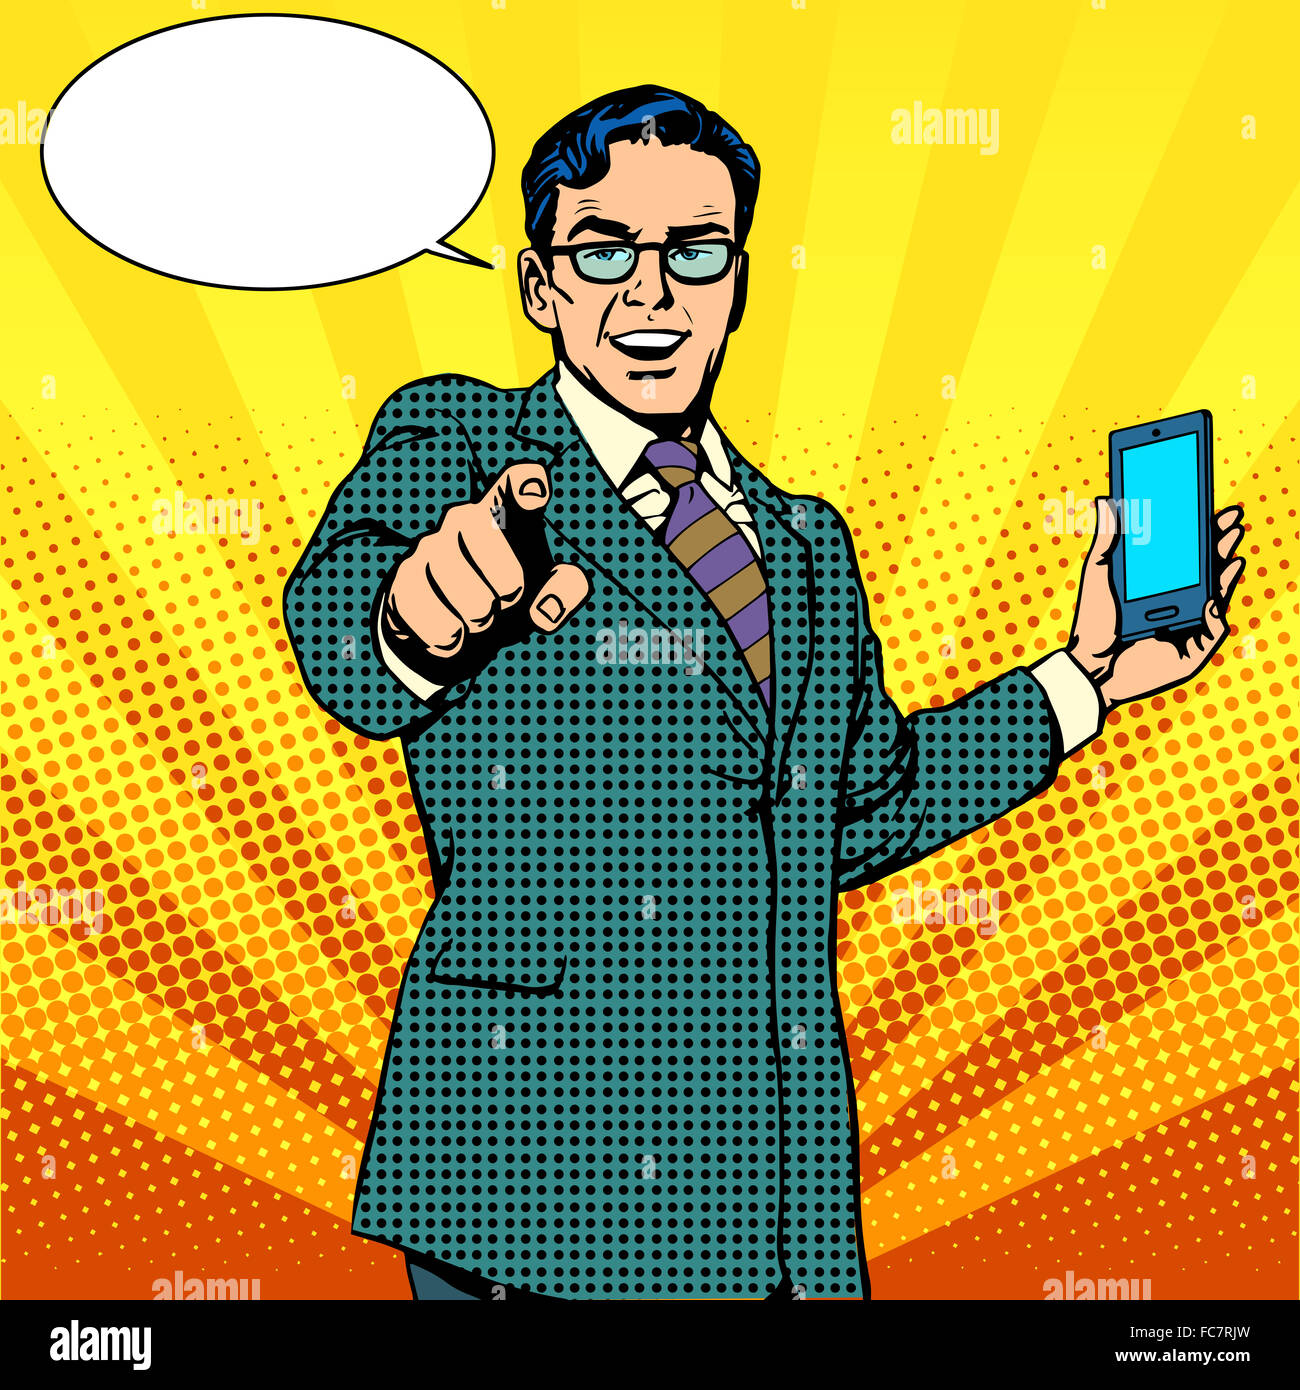 buy a new gadget and phone business concept - Stock Image